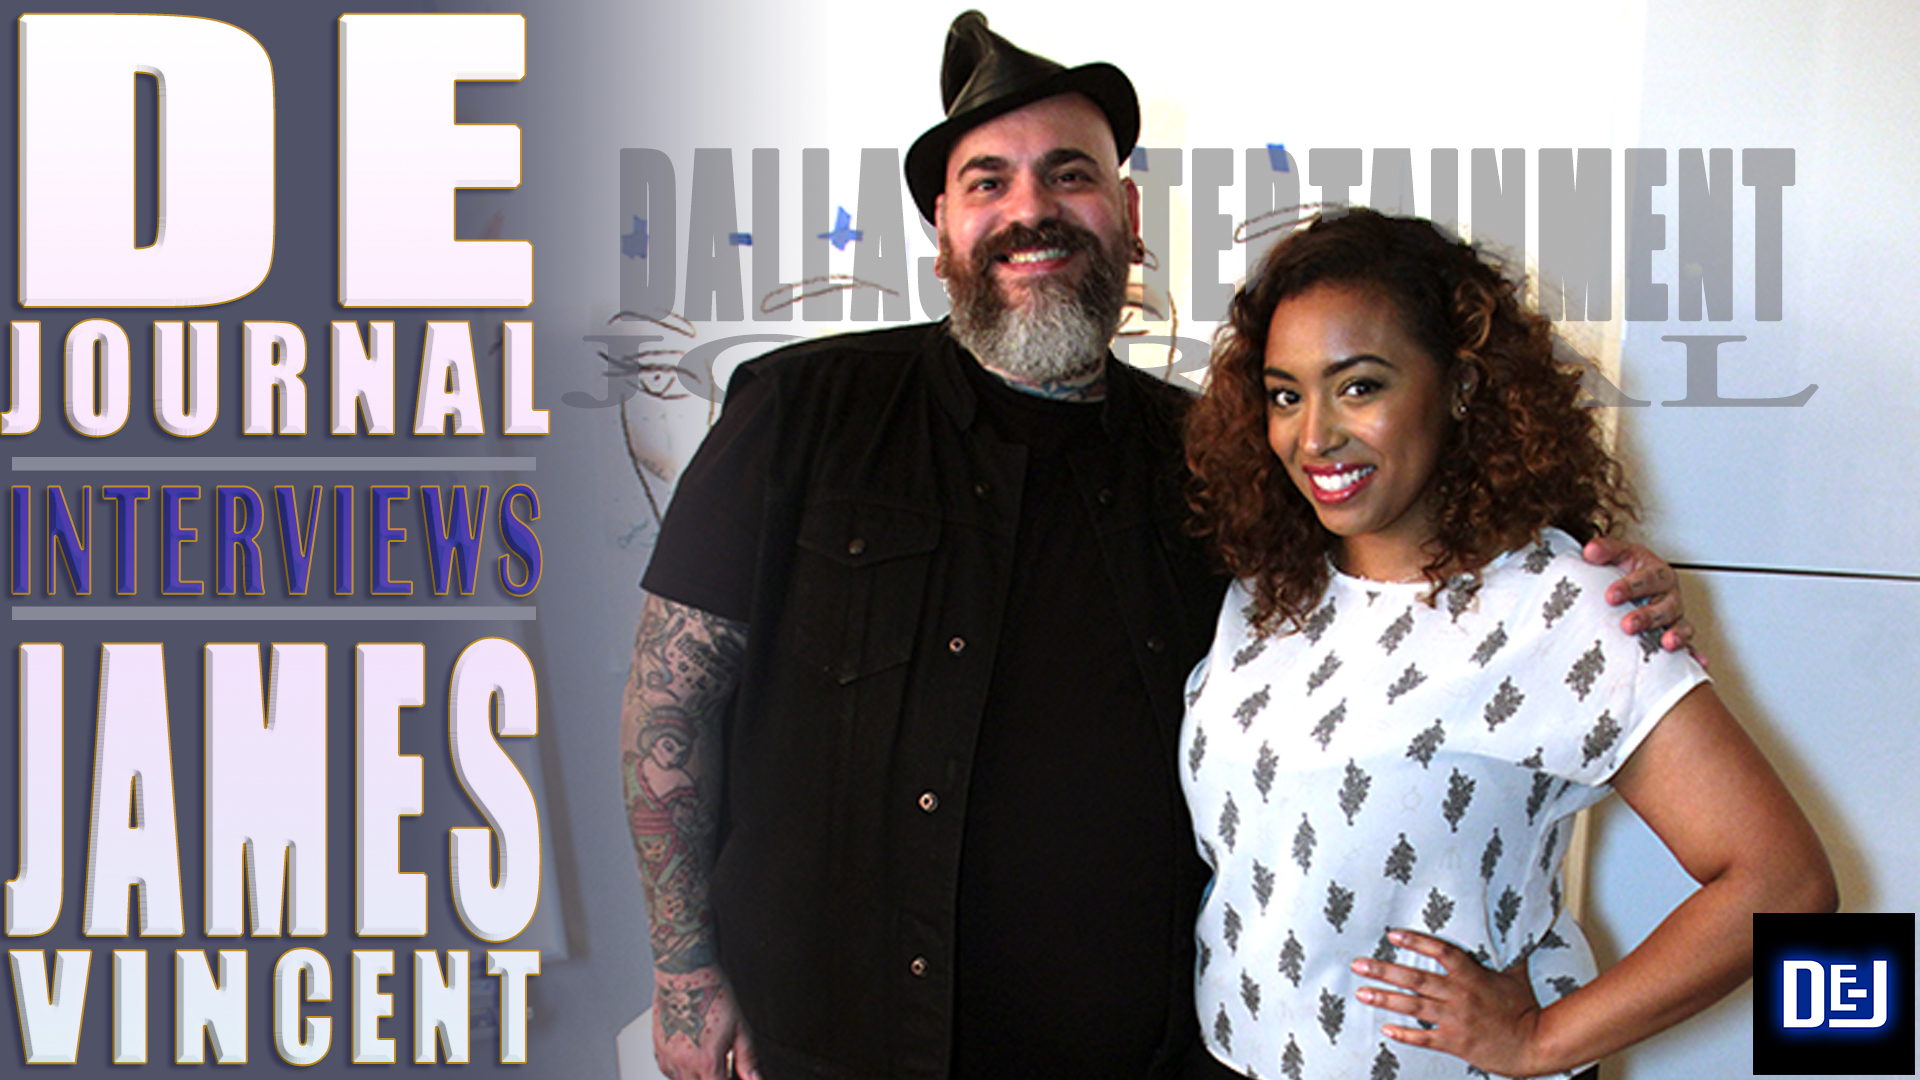 DEJ Dallas Entertainment Journal Interviews James Vincent Jasmine Ellis Makeup Show Dallas Texas